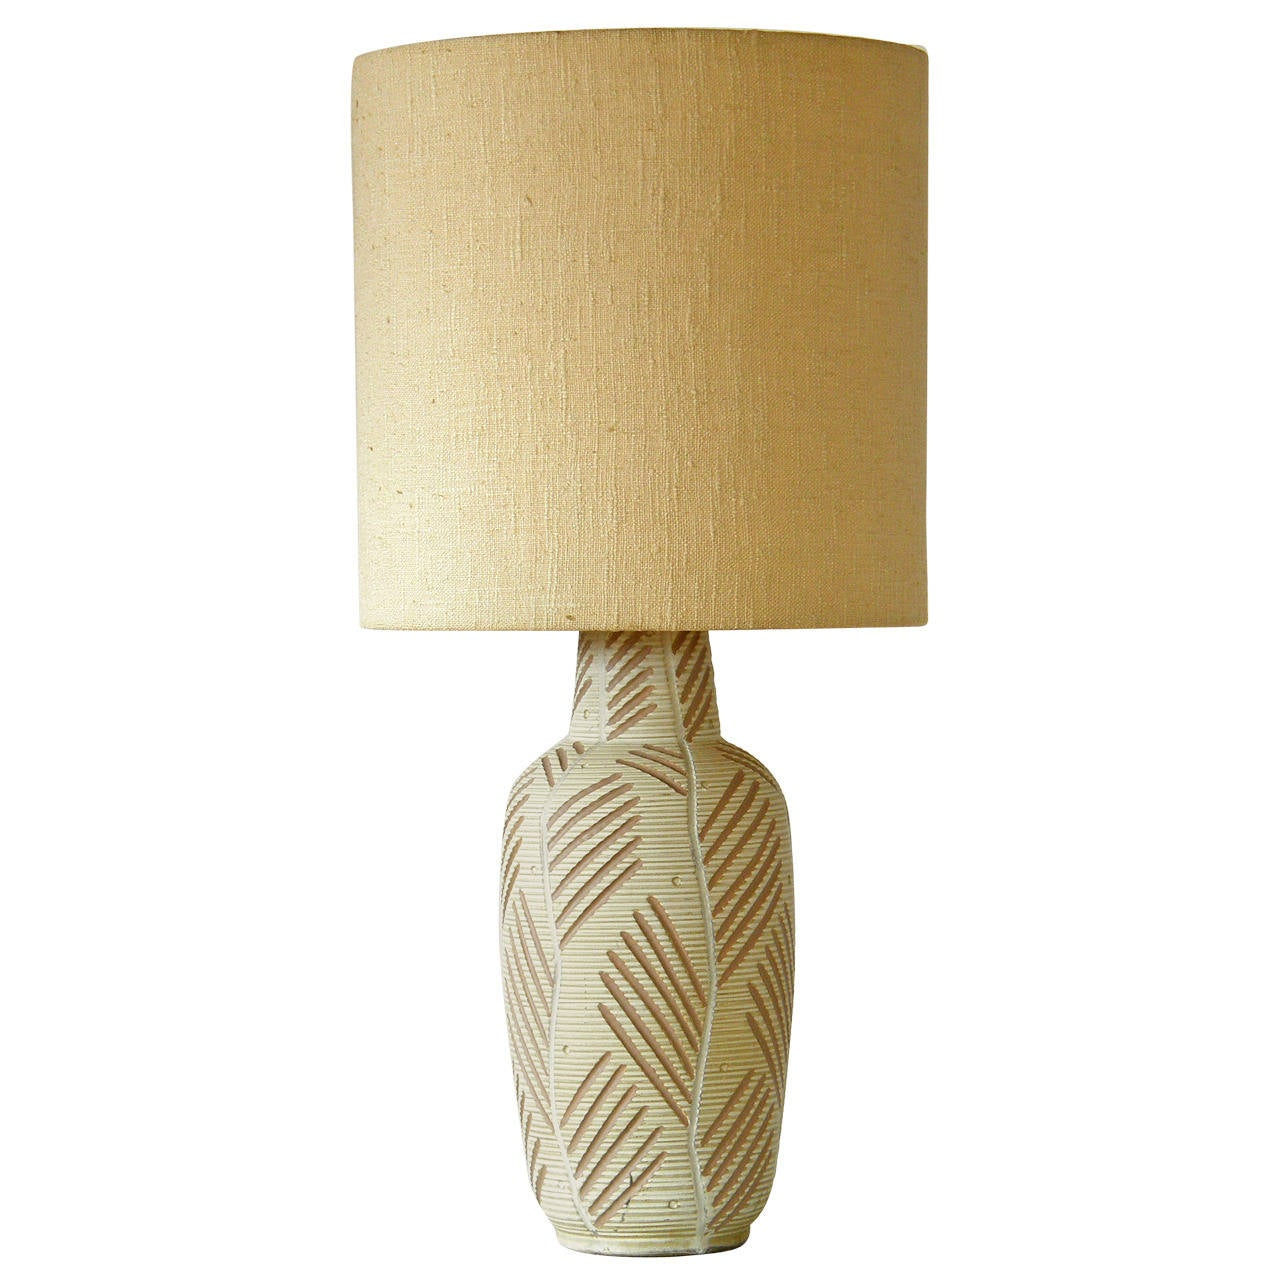 Design Technics Table Lamp For Sale At 1stdibs